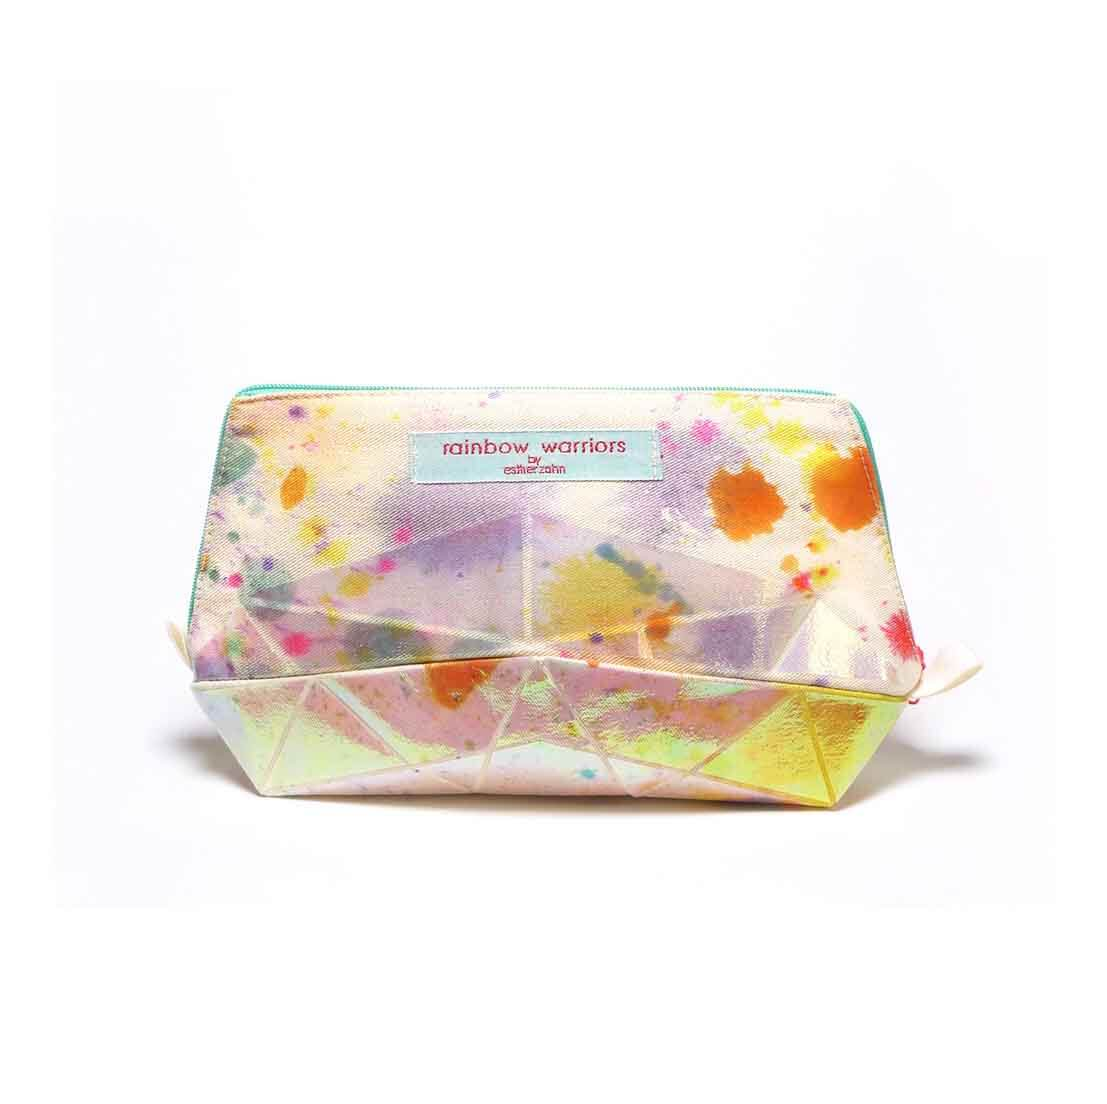 pepe and nika rainbow warriors by esther zahn made in germany colorchanging canvas pouch navy stars